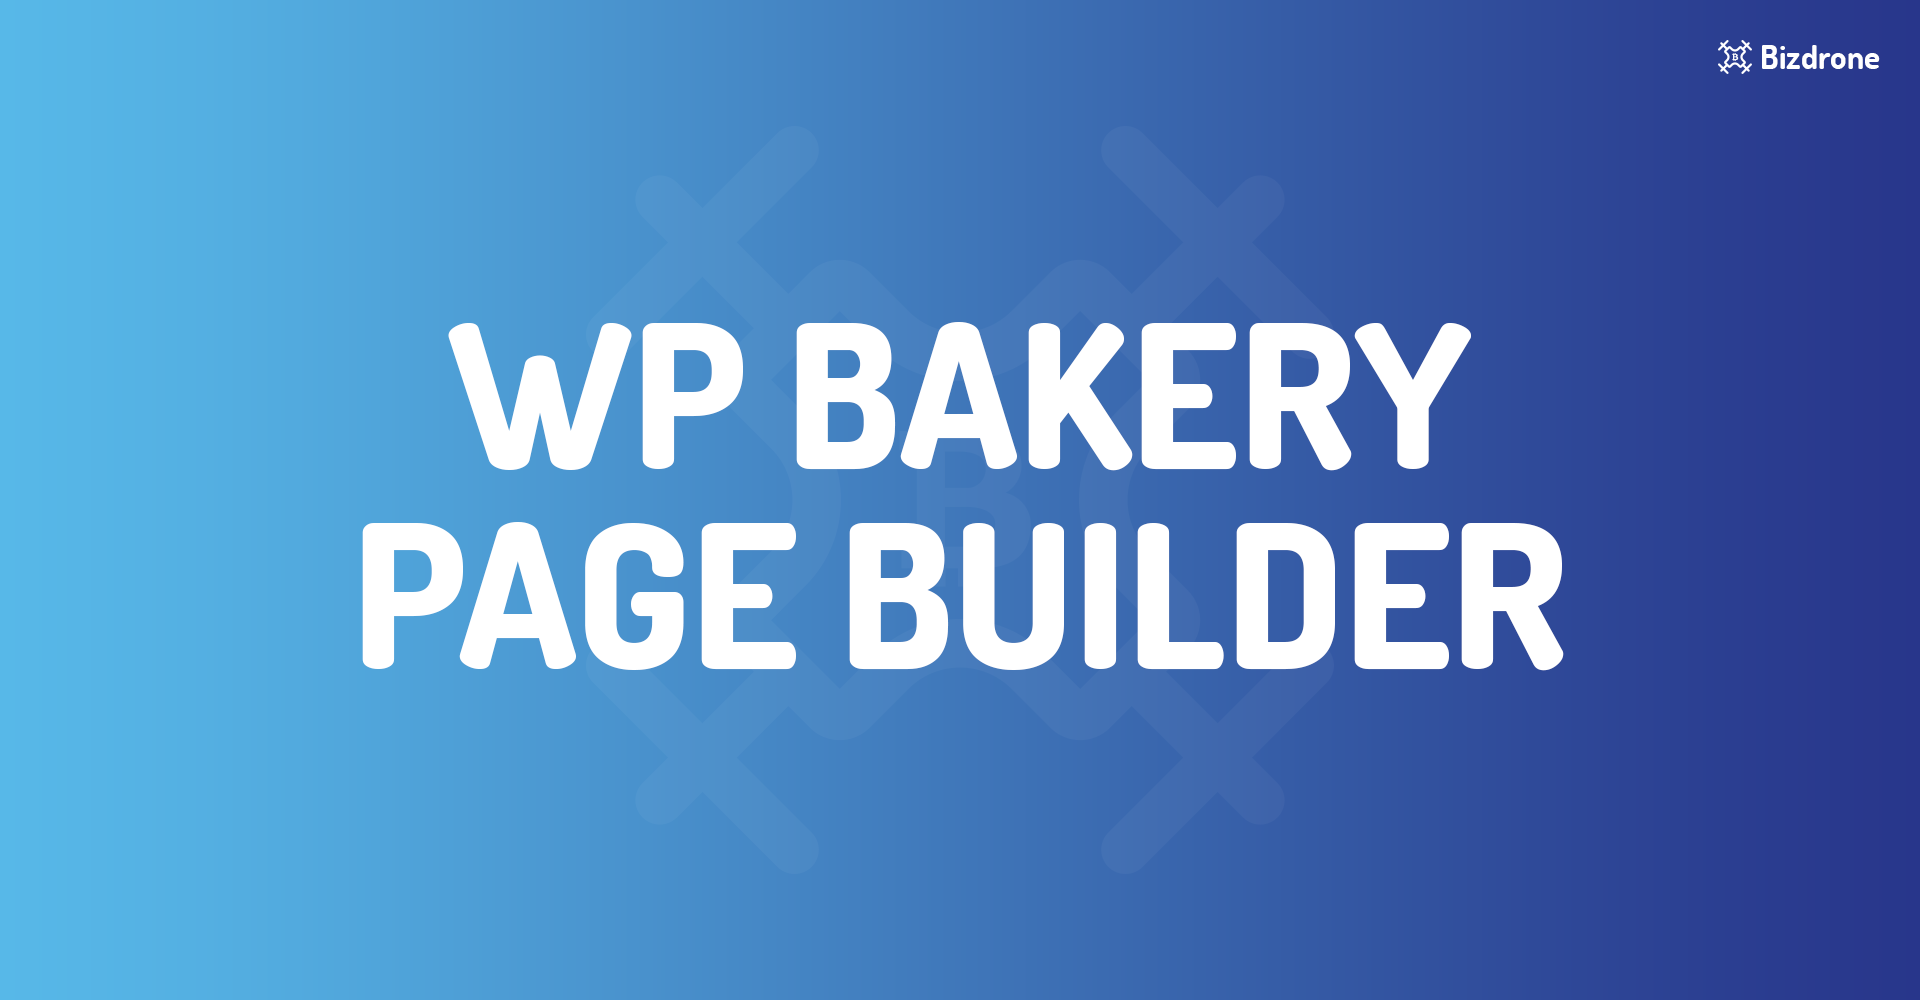 P BAKERY PAGE BUILDER